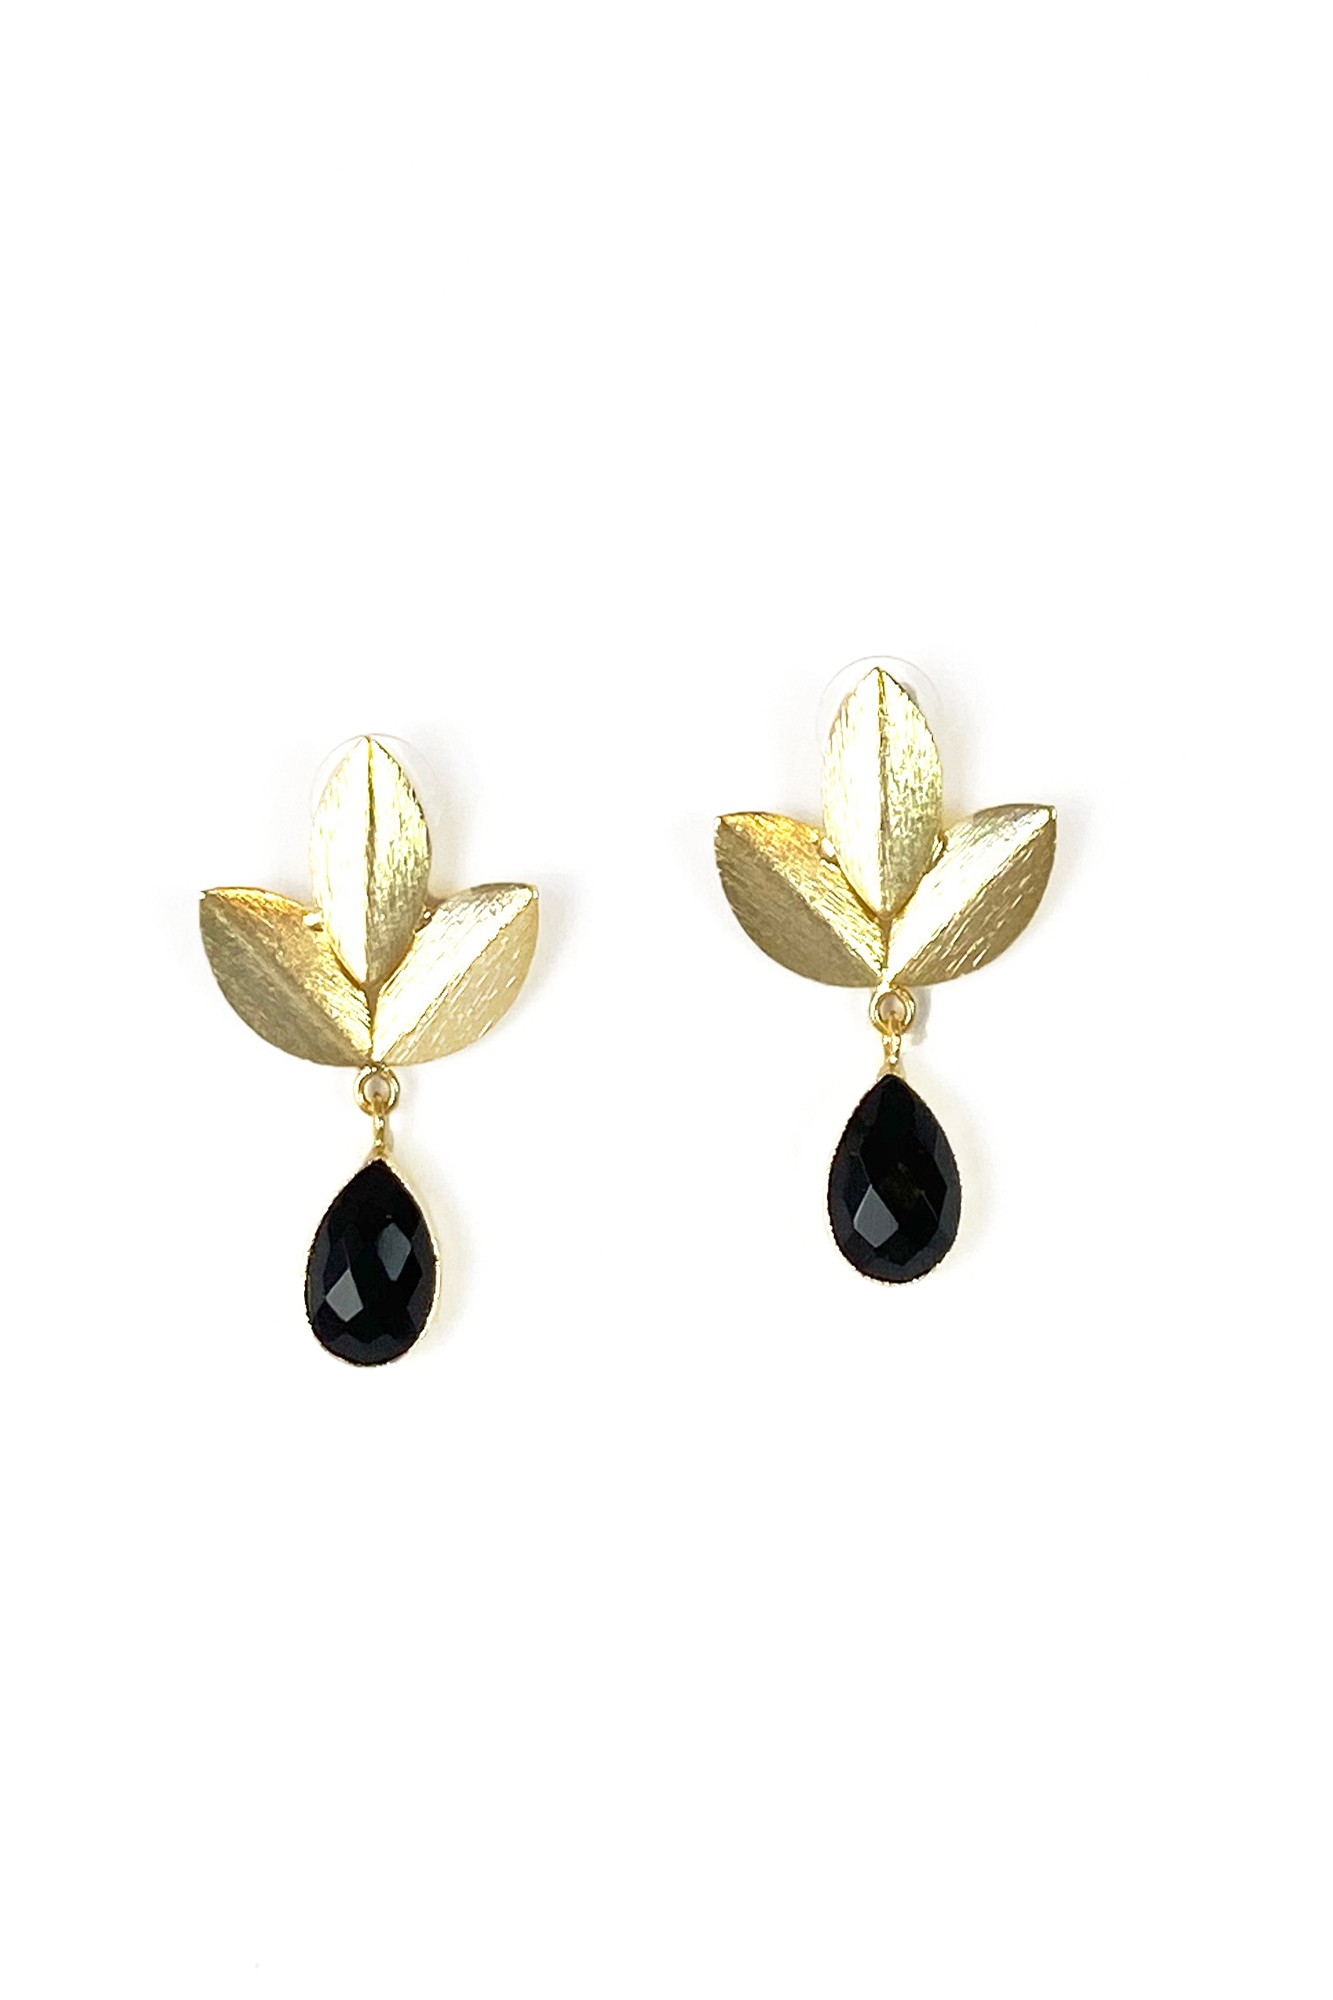 NUIT EARRINGS